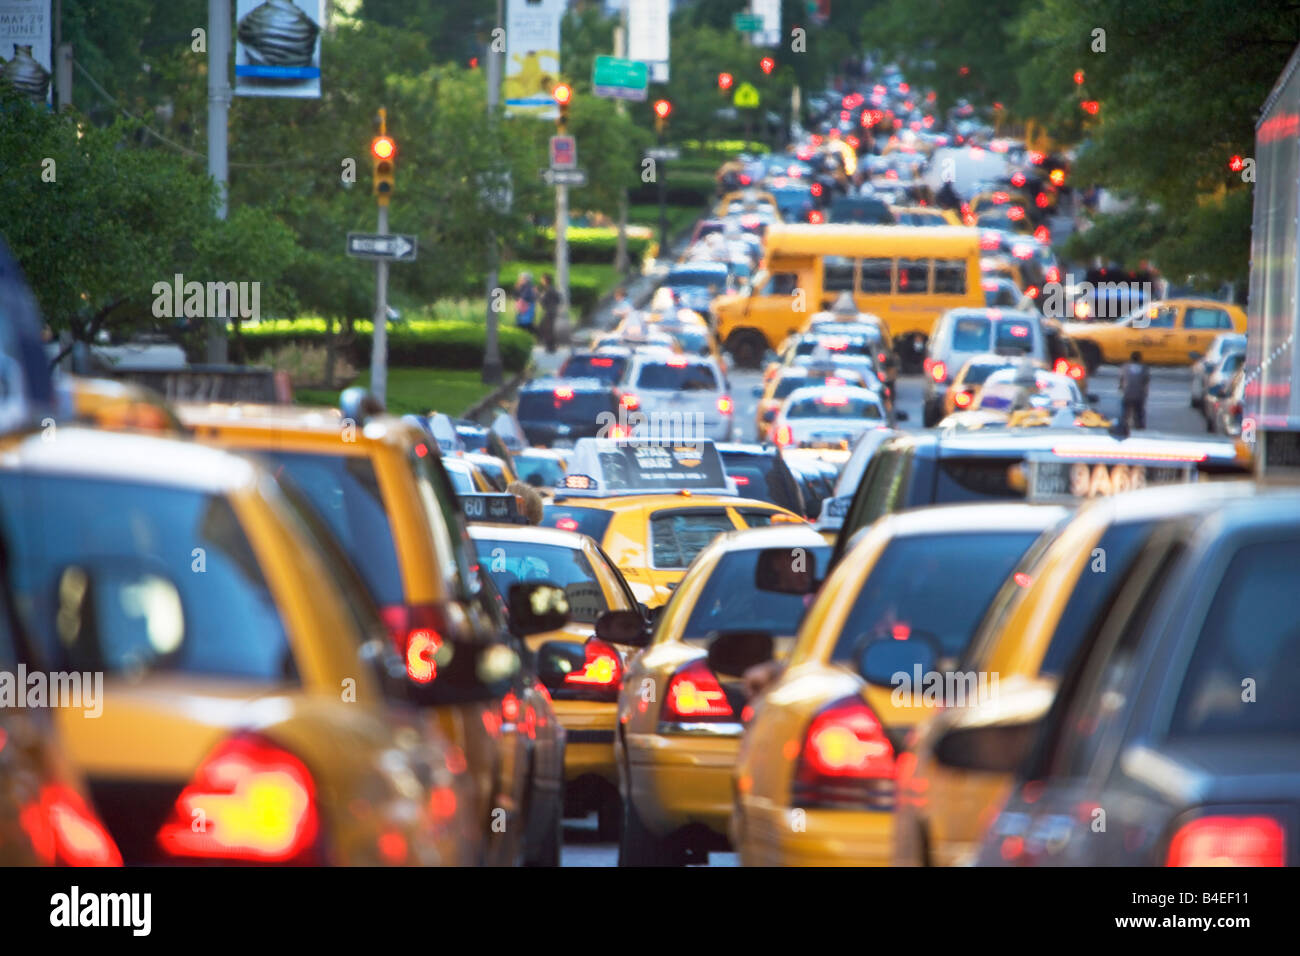 taxis busy cars trucks motor vehicle new york city